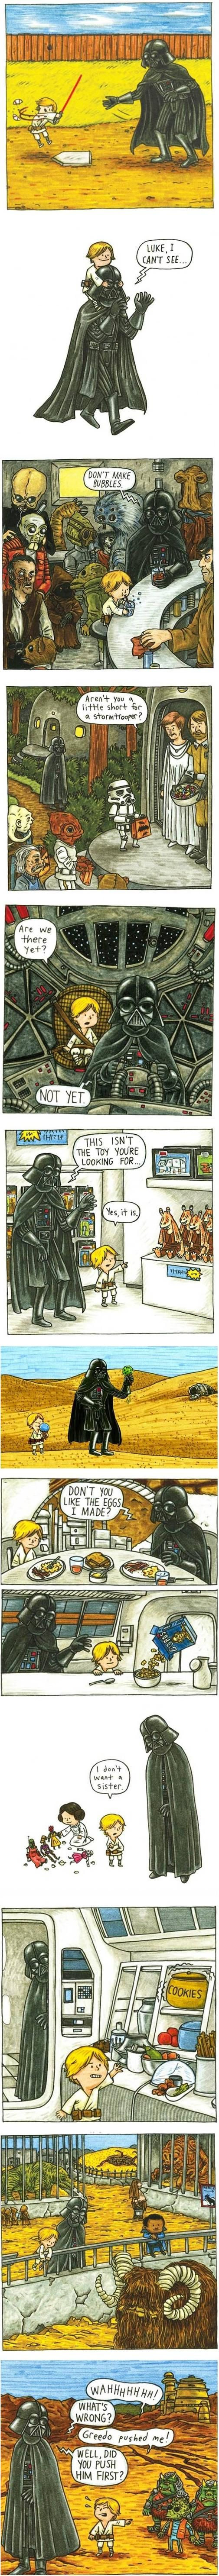 if darth vader had've been a good dad